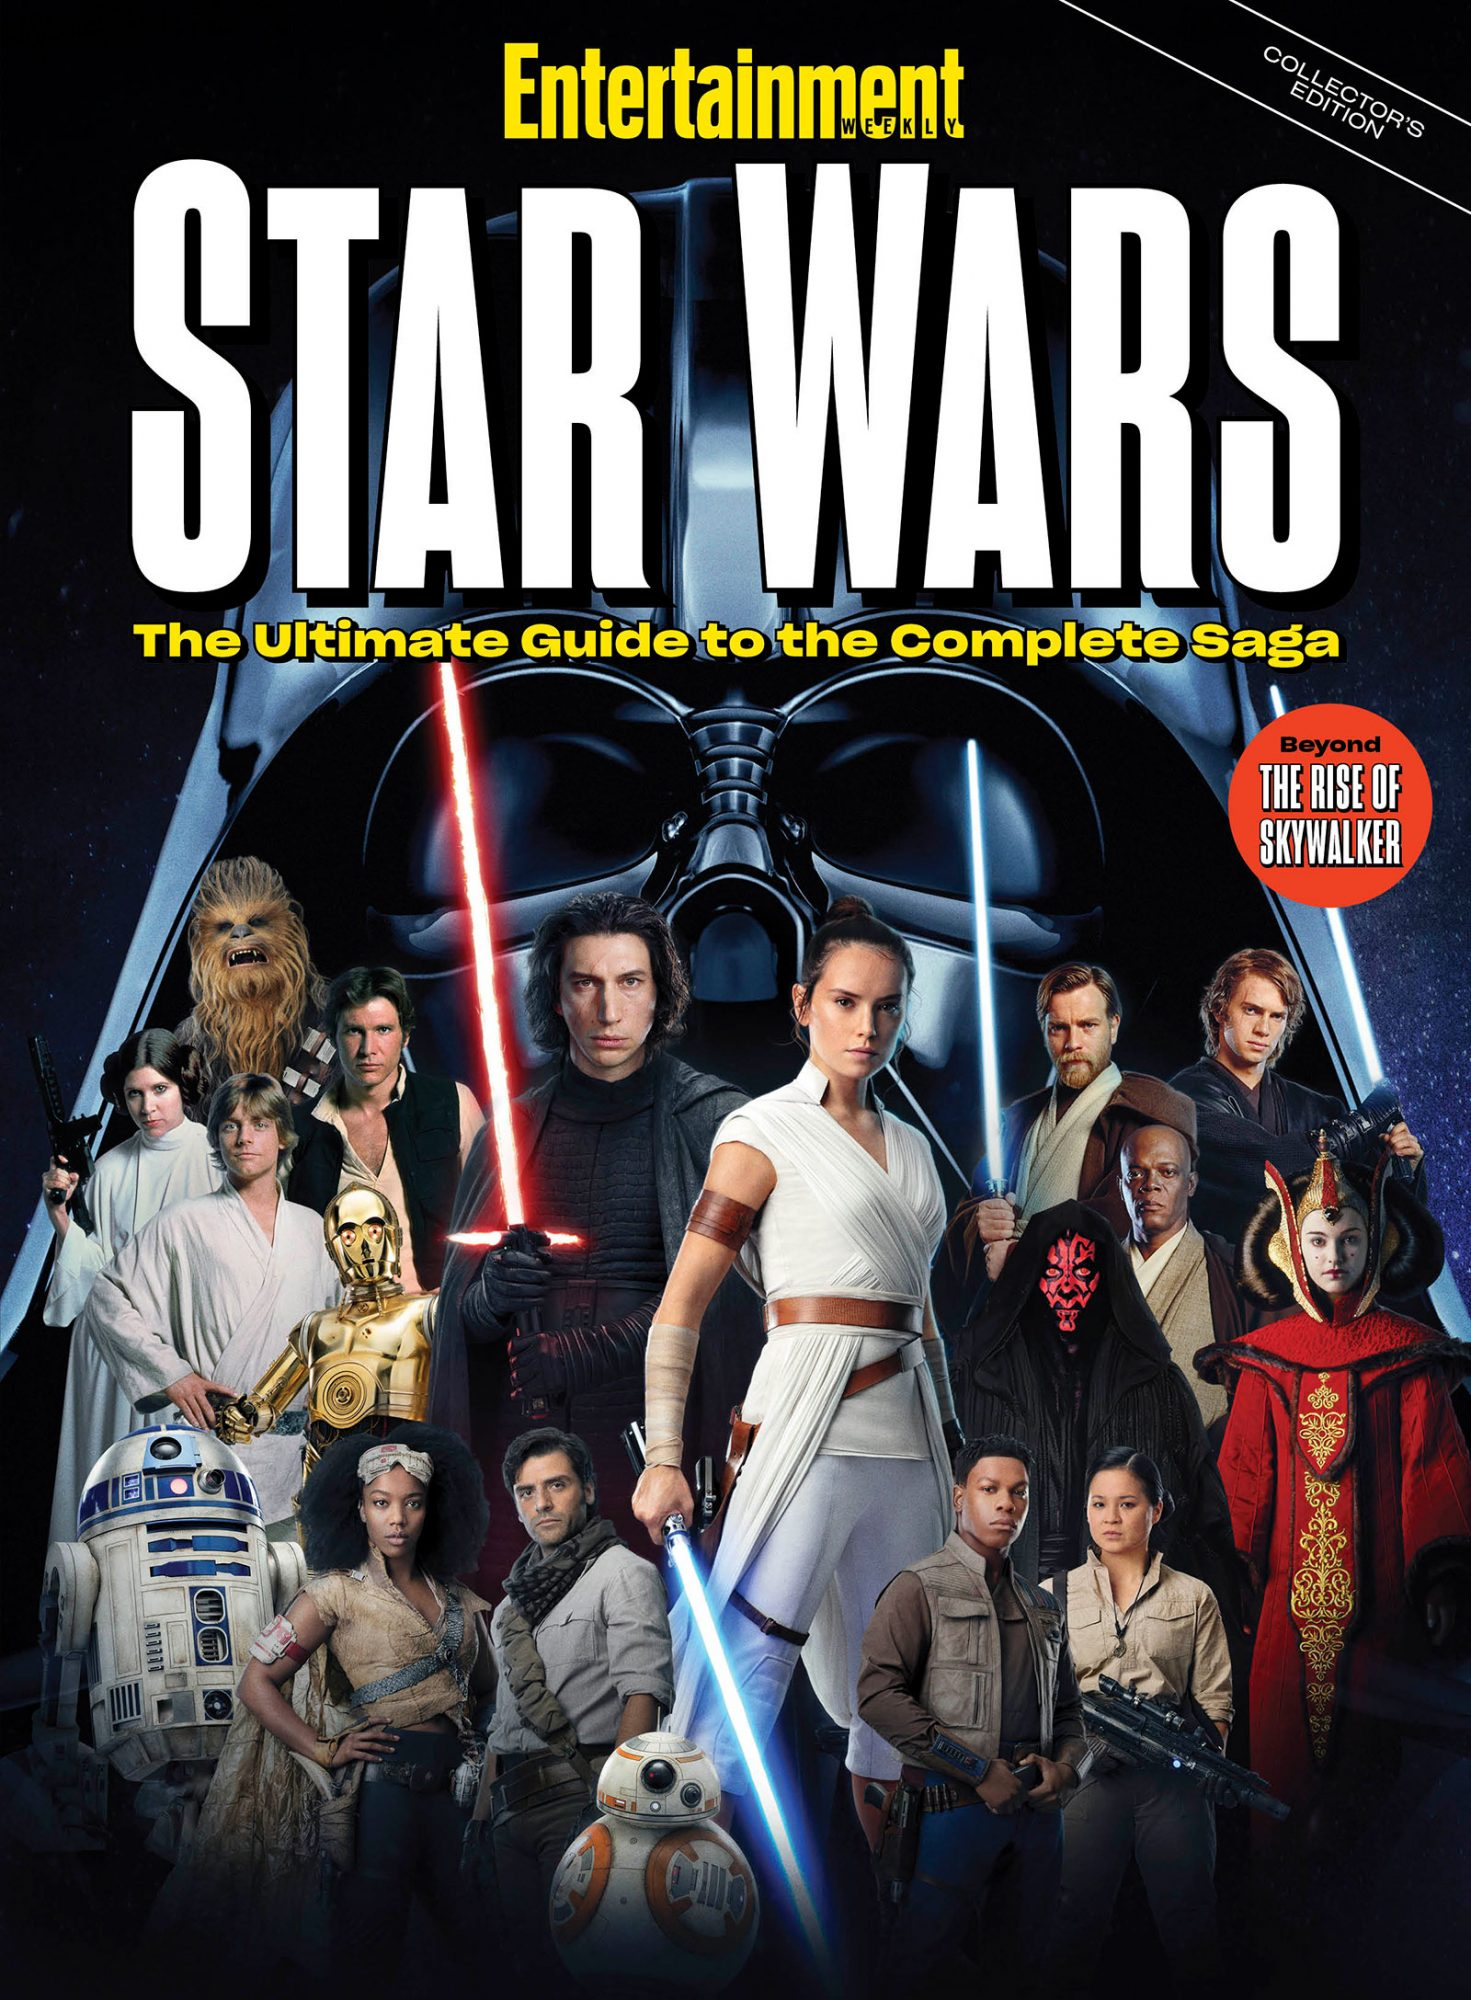 Star Wars: The Ultimate Guide to the Complete Saga